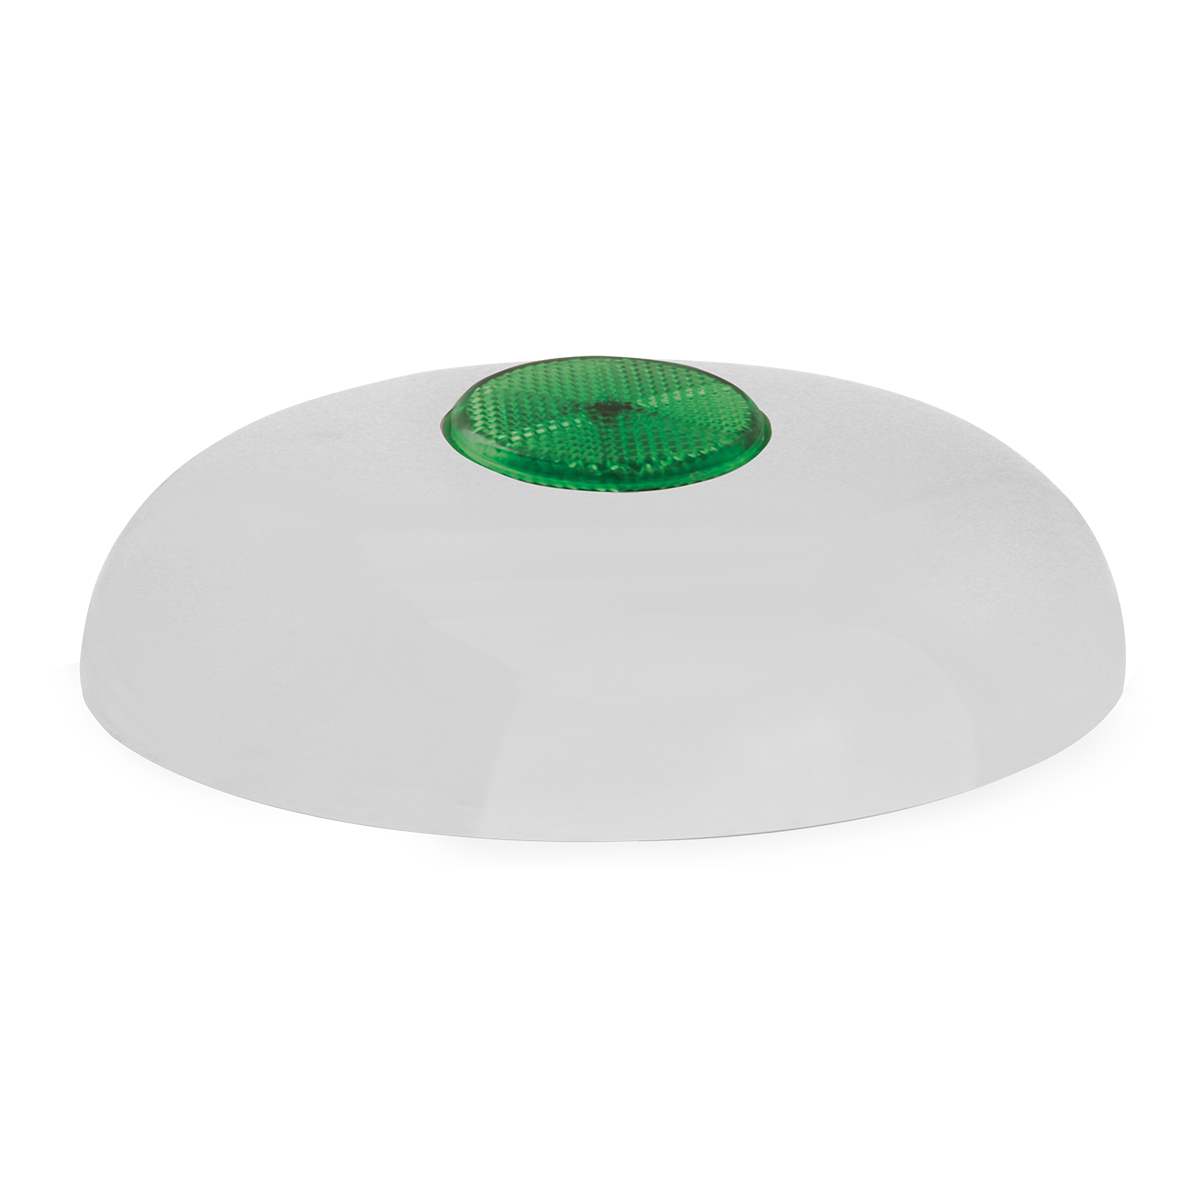 """Chrome Plated Steel Horn Cover with Green Reflector on Center – 5 ½""""- 6"""""""